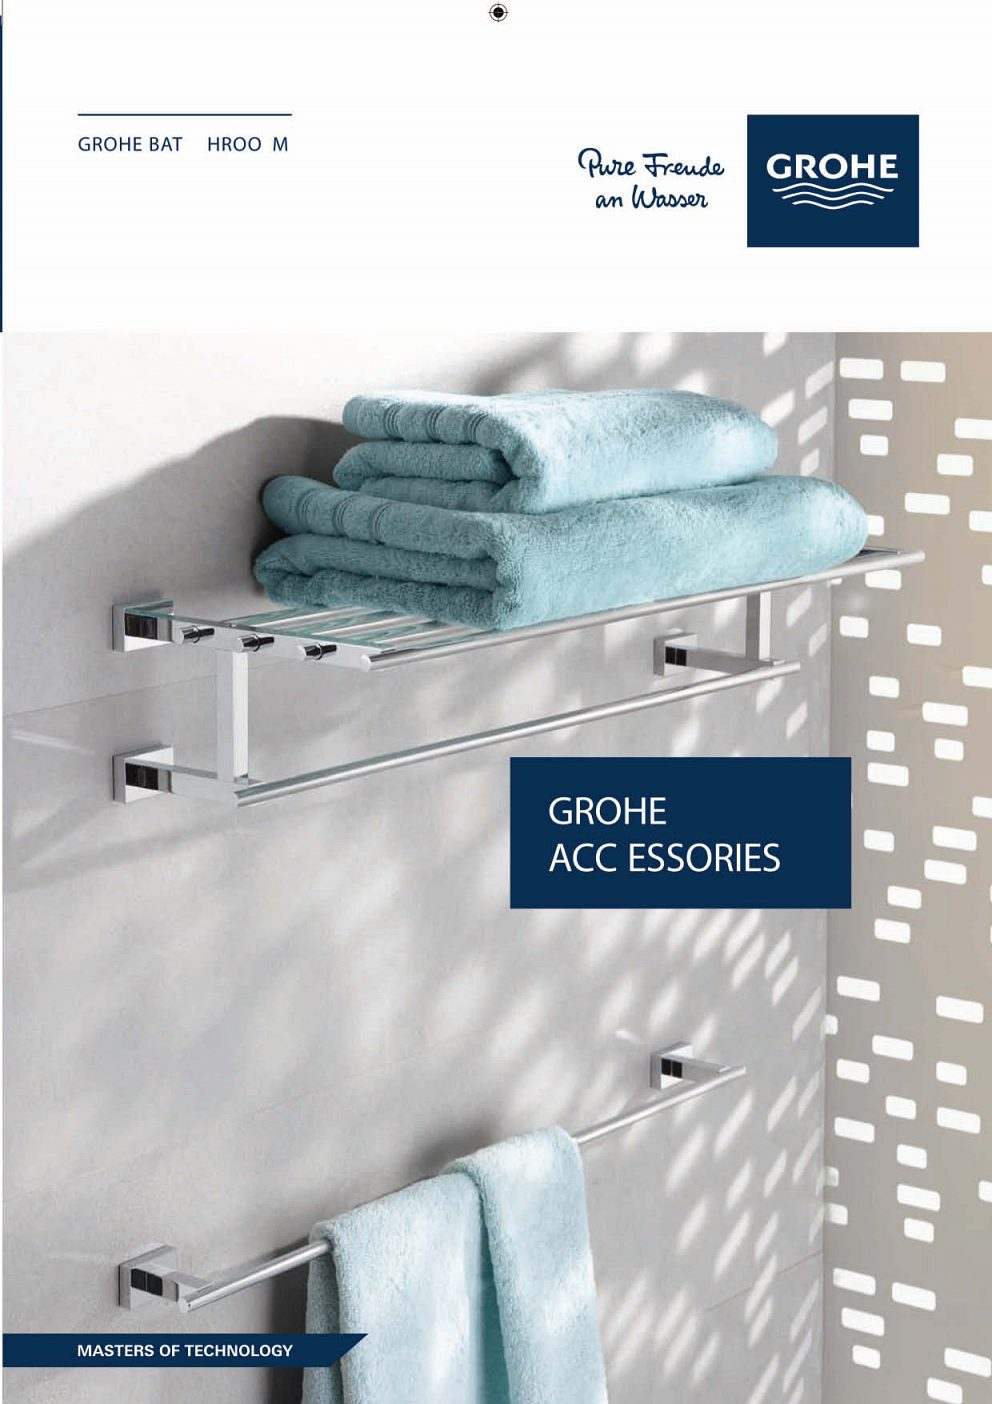 Grohe - Accessories